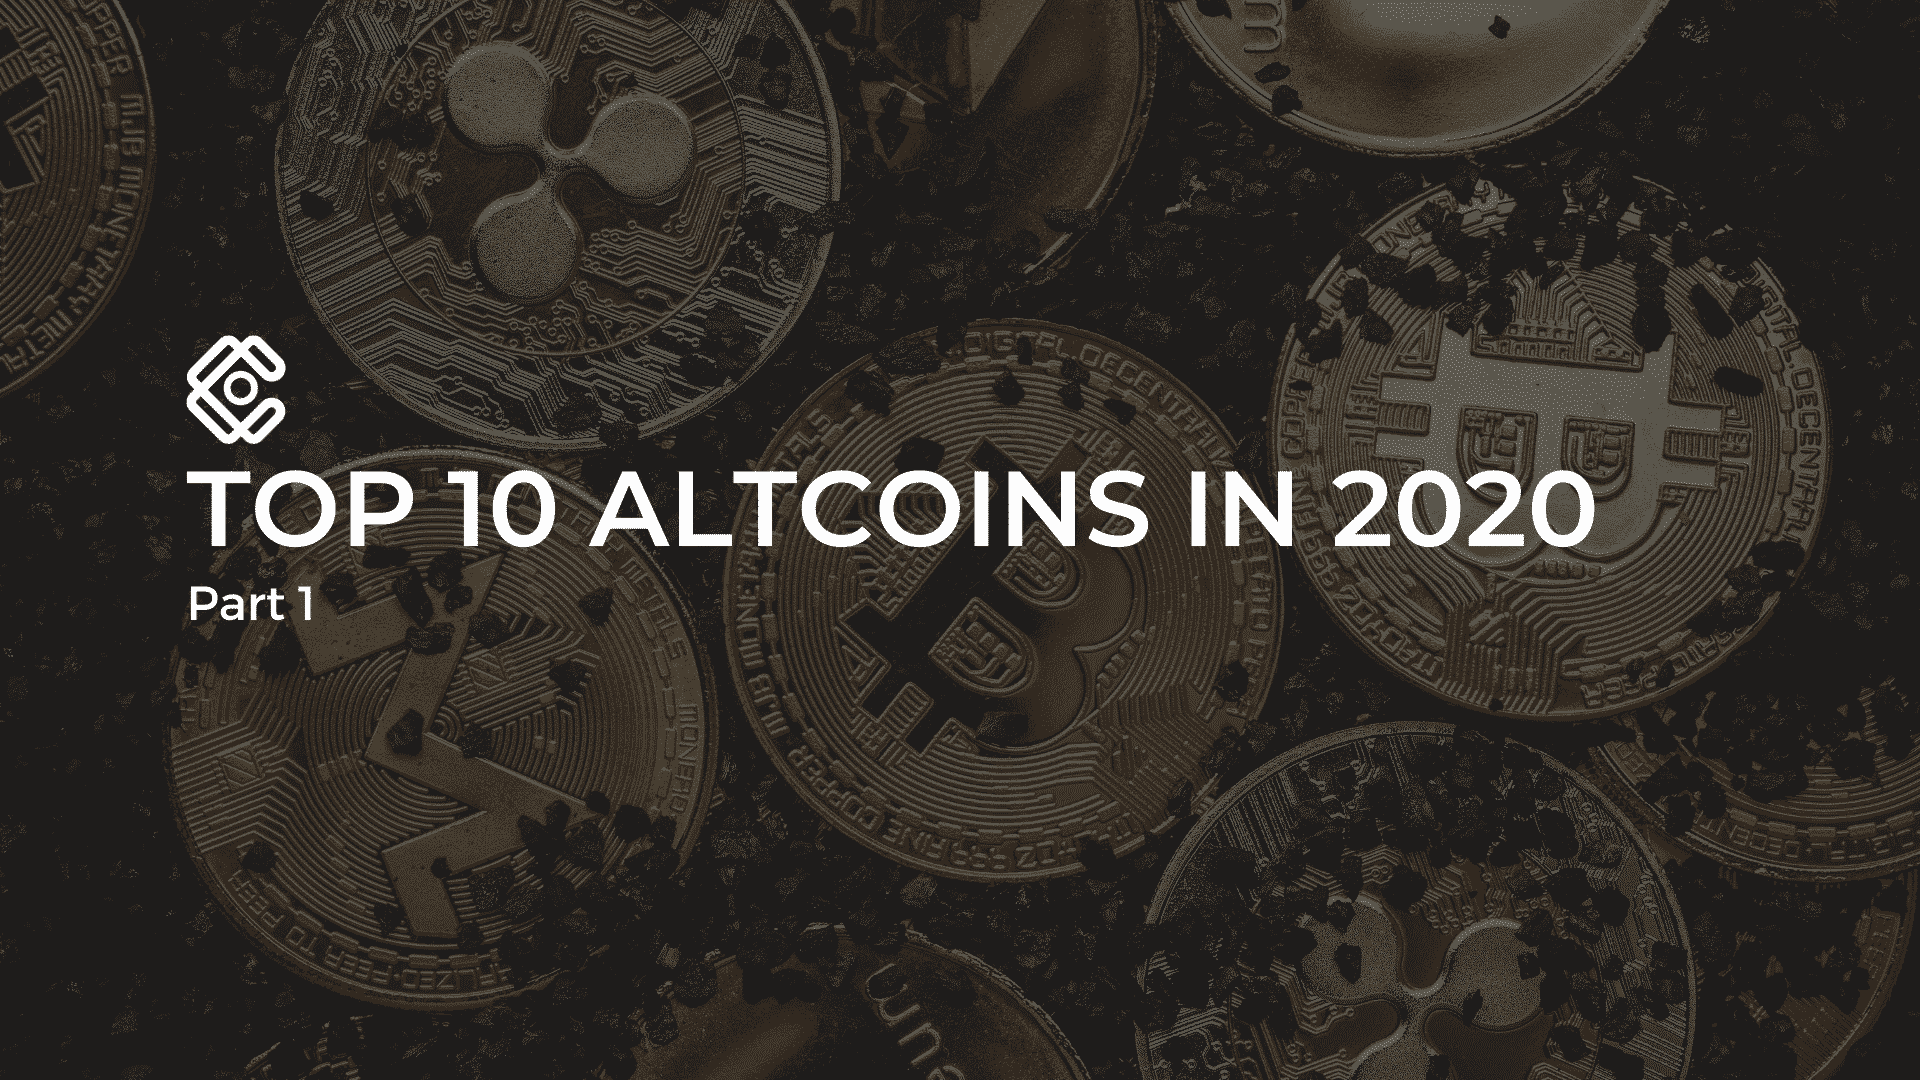 Top 10 Altcoins in 2020, part 1